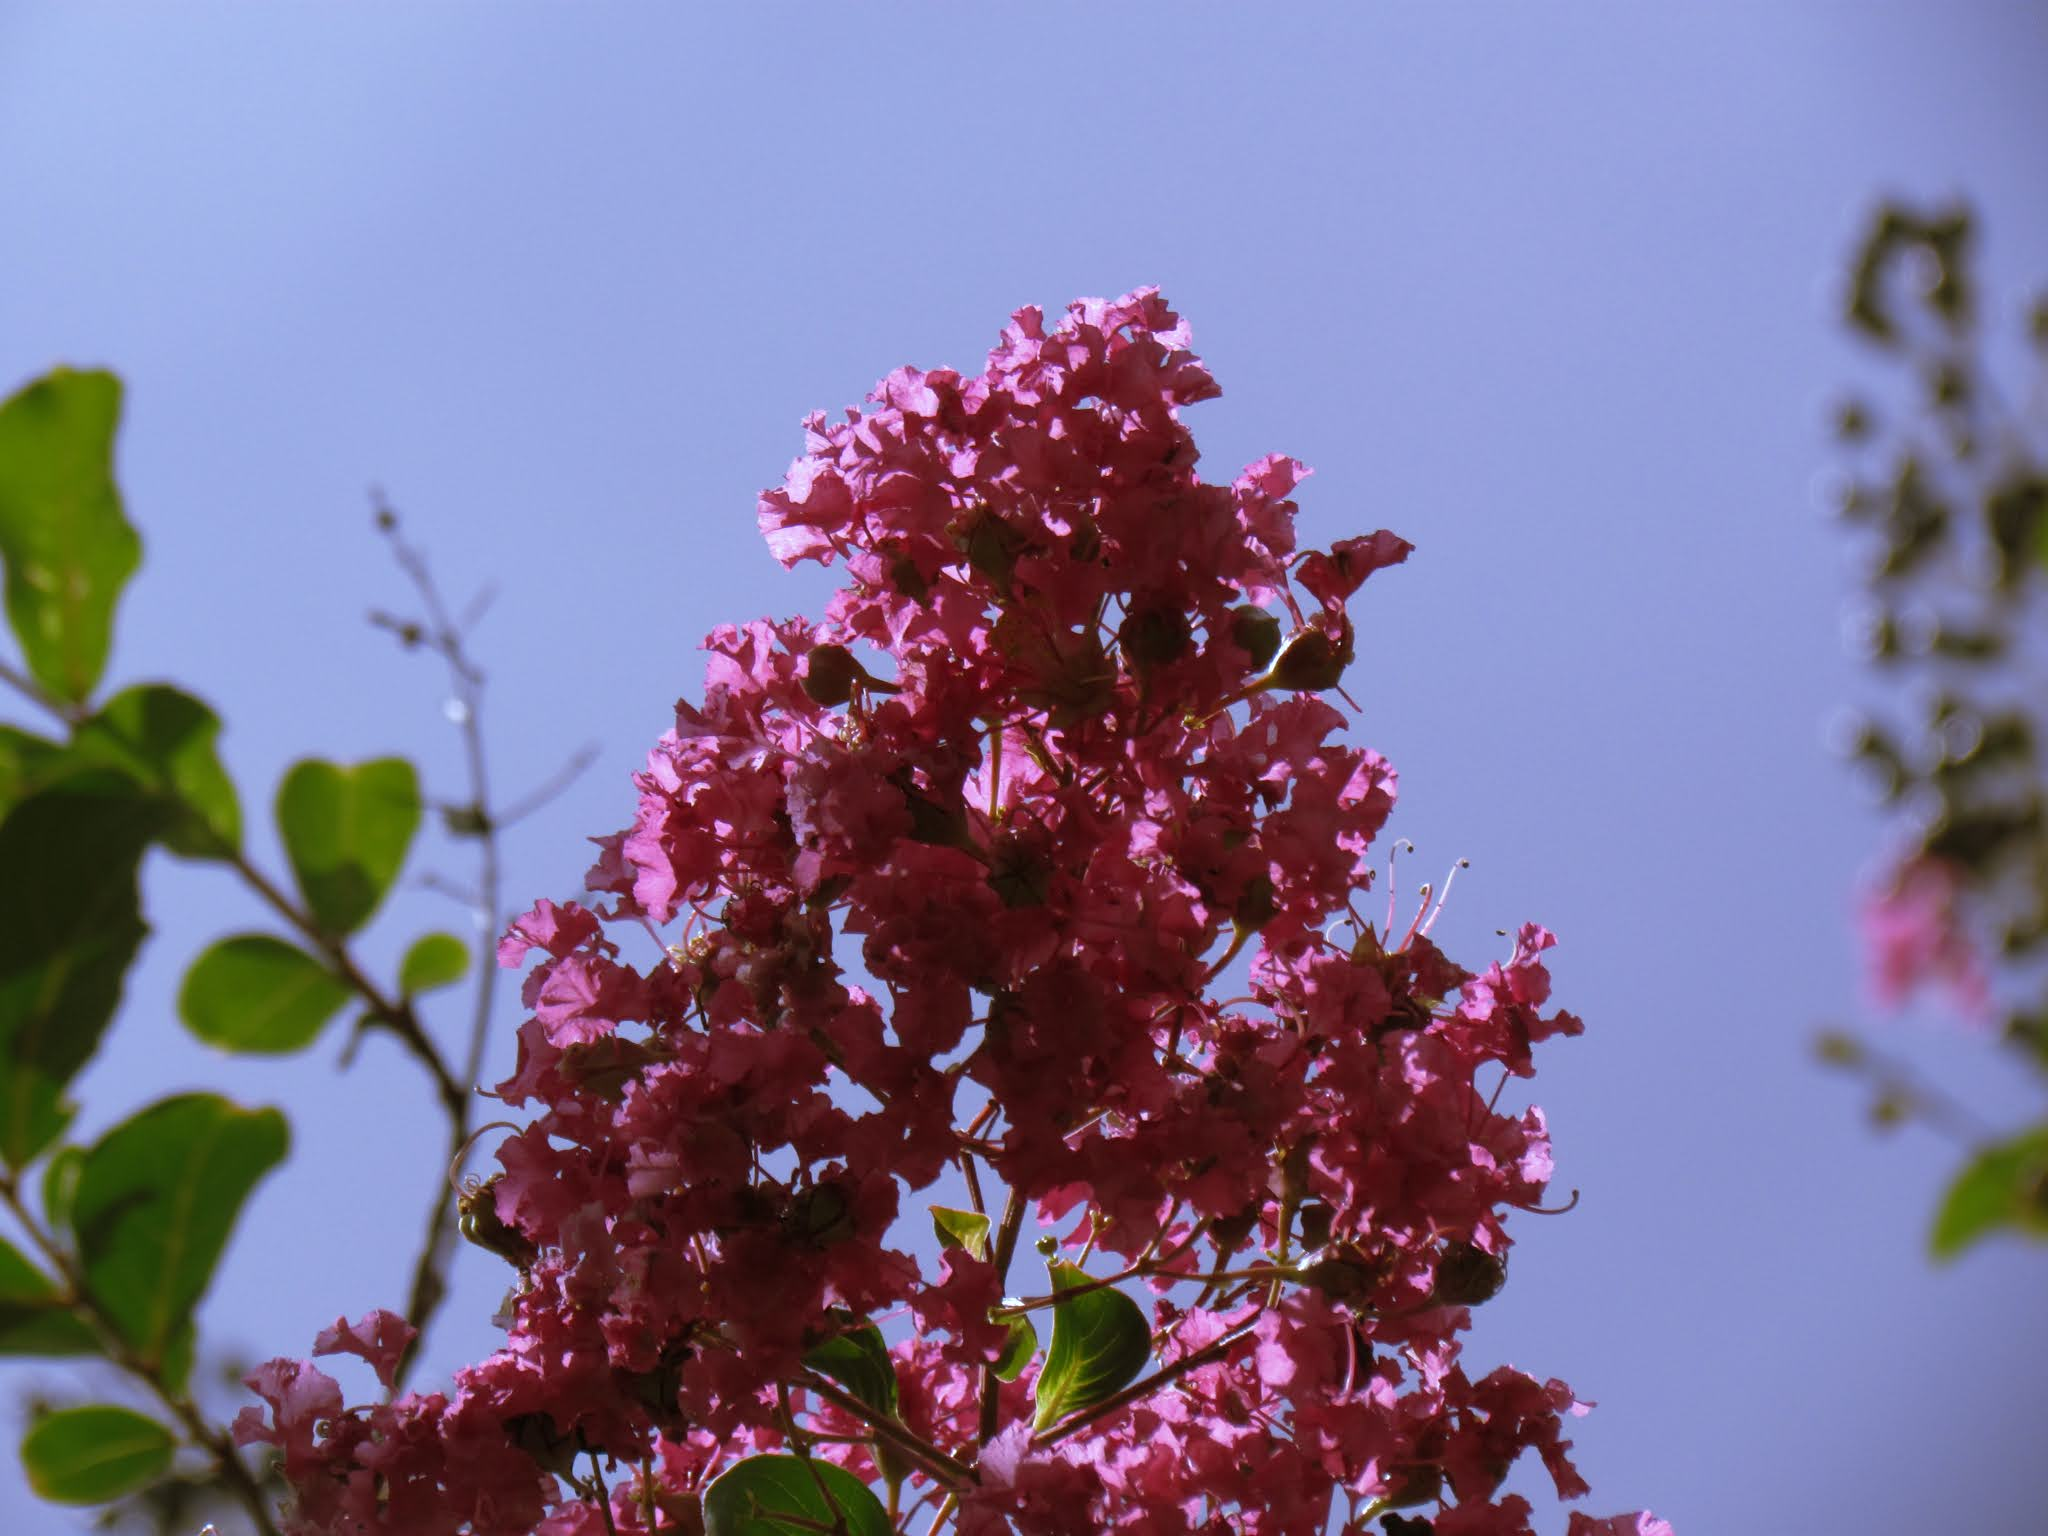 A flowering pink plant budding to life in the blue skies of a Florida park and wonderland